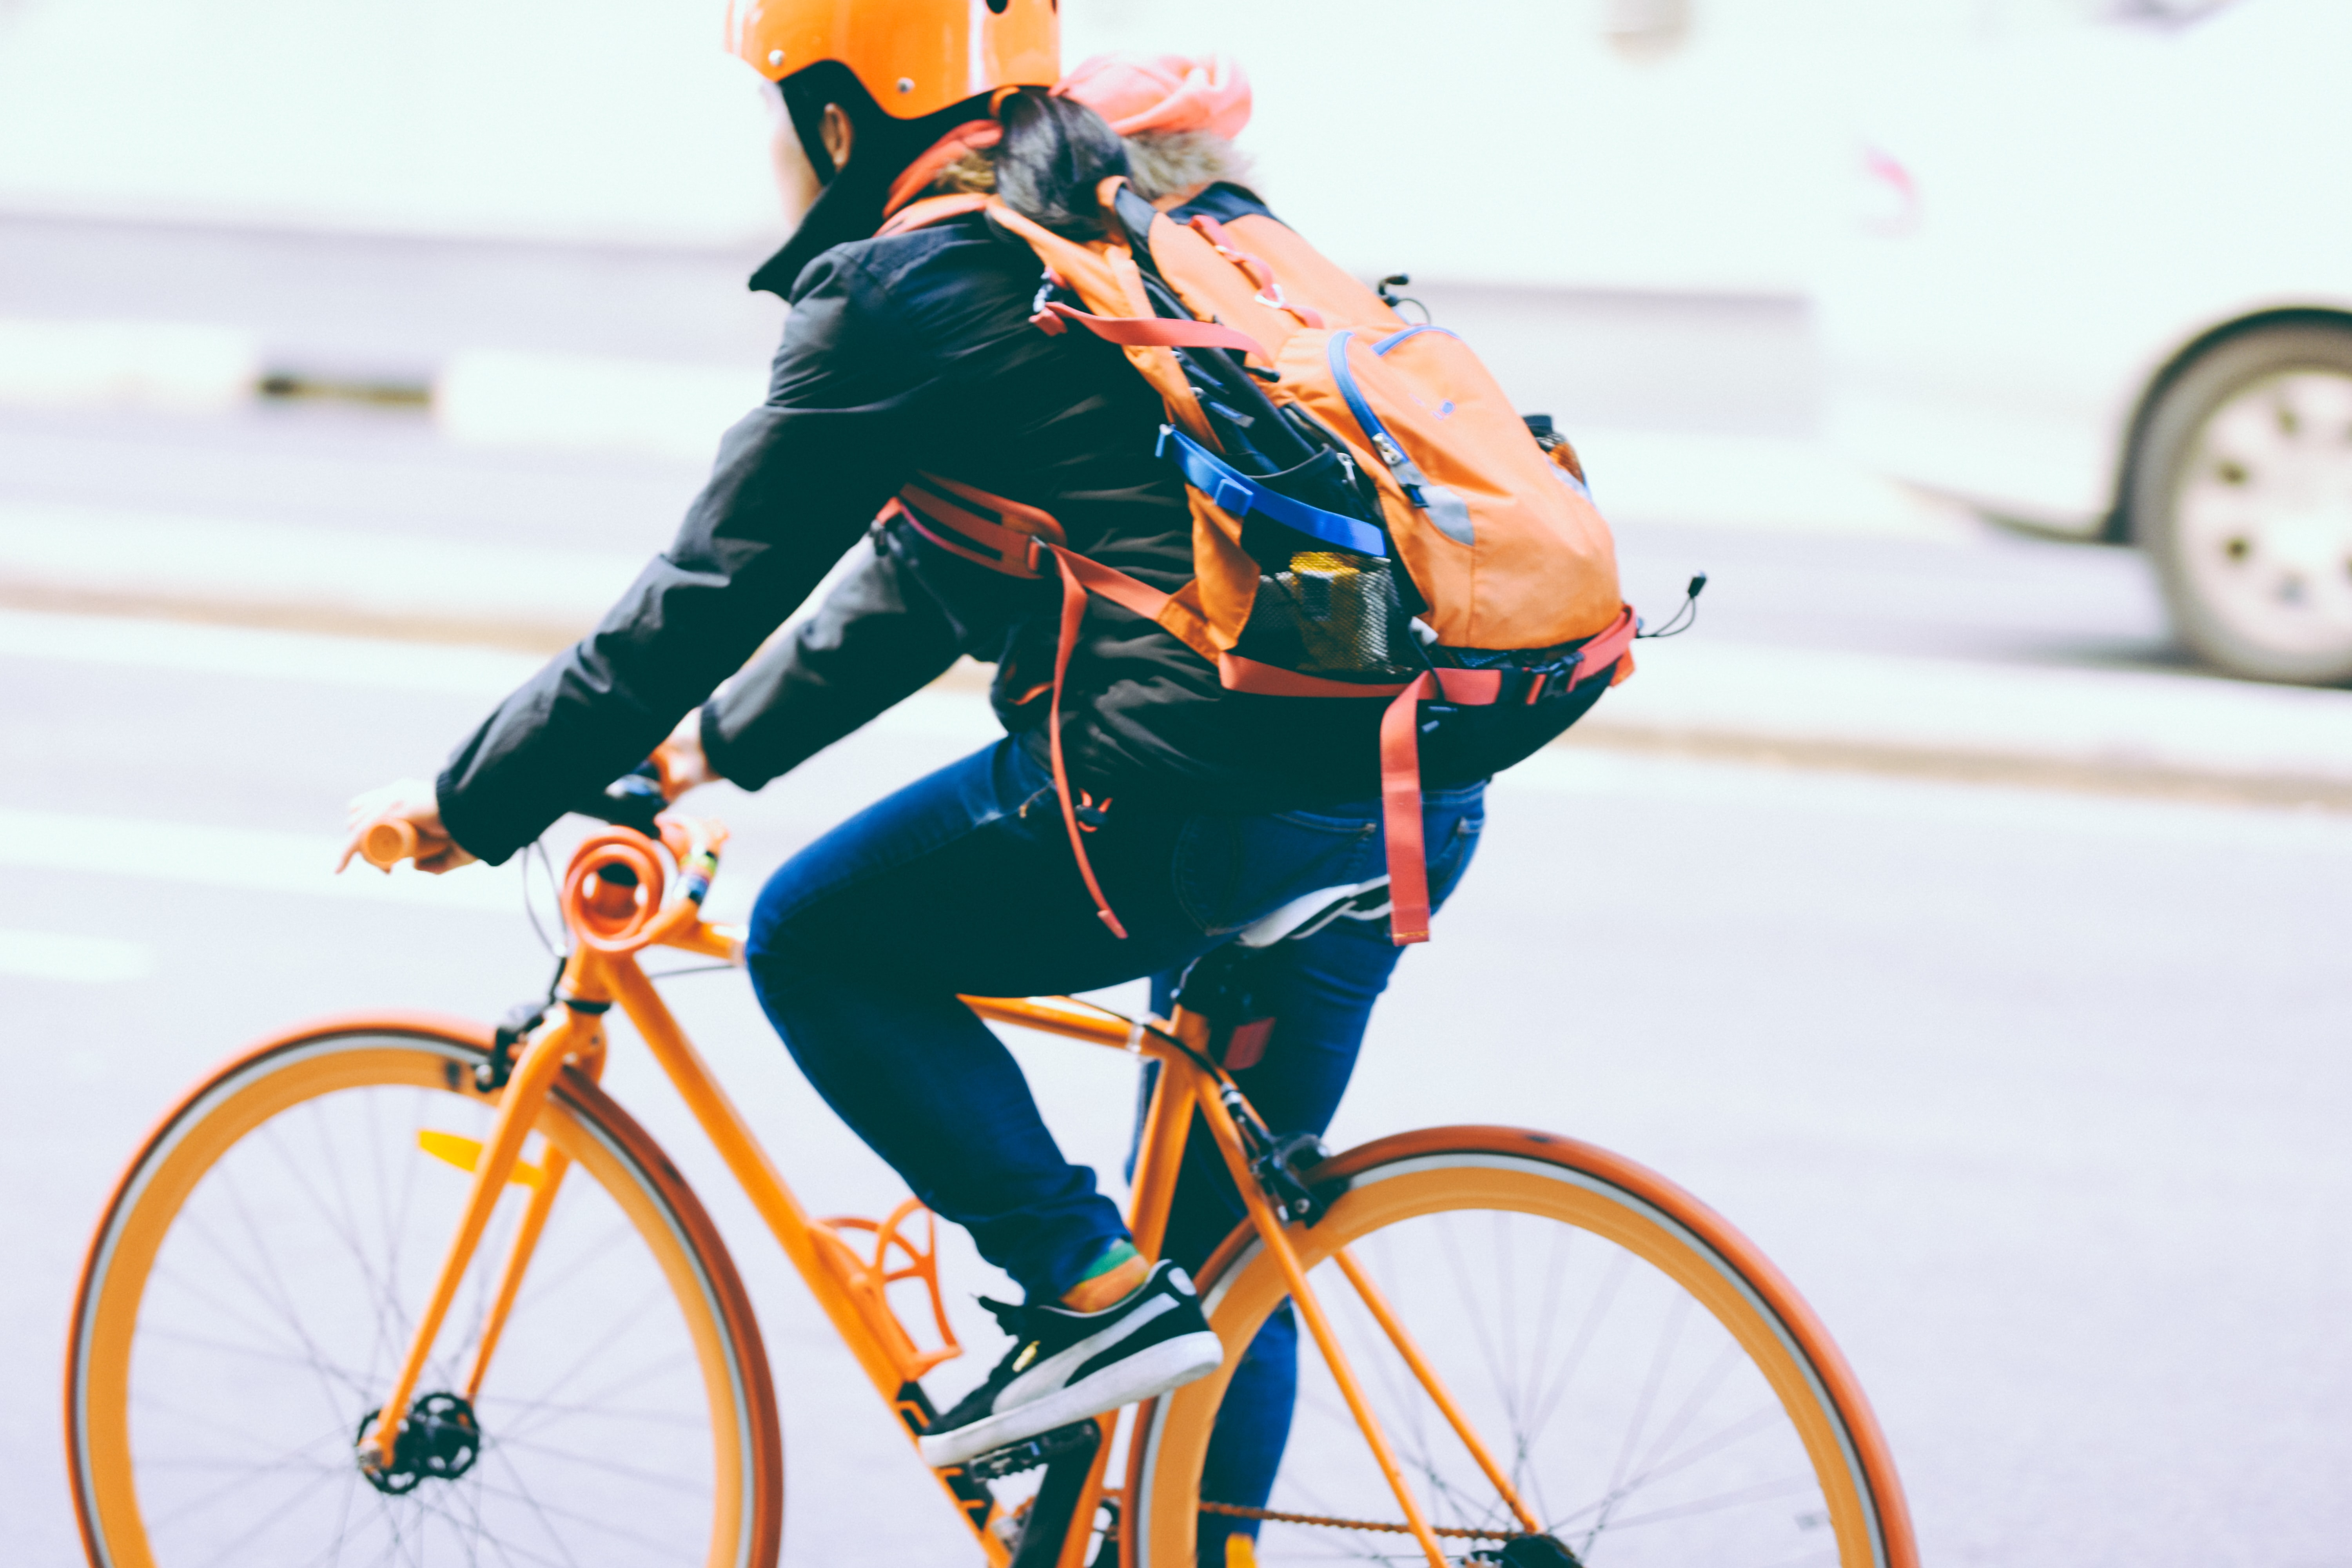 A woman with a backpack riding an orange bicycle